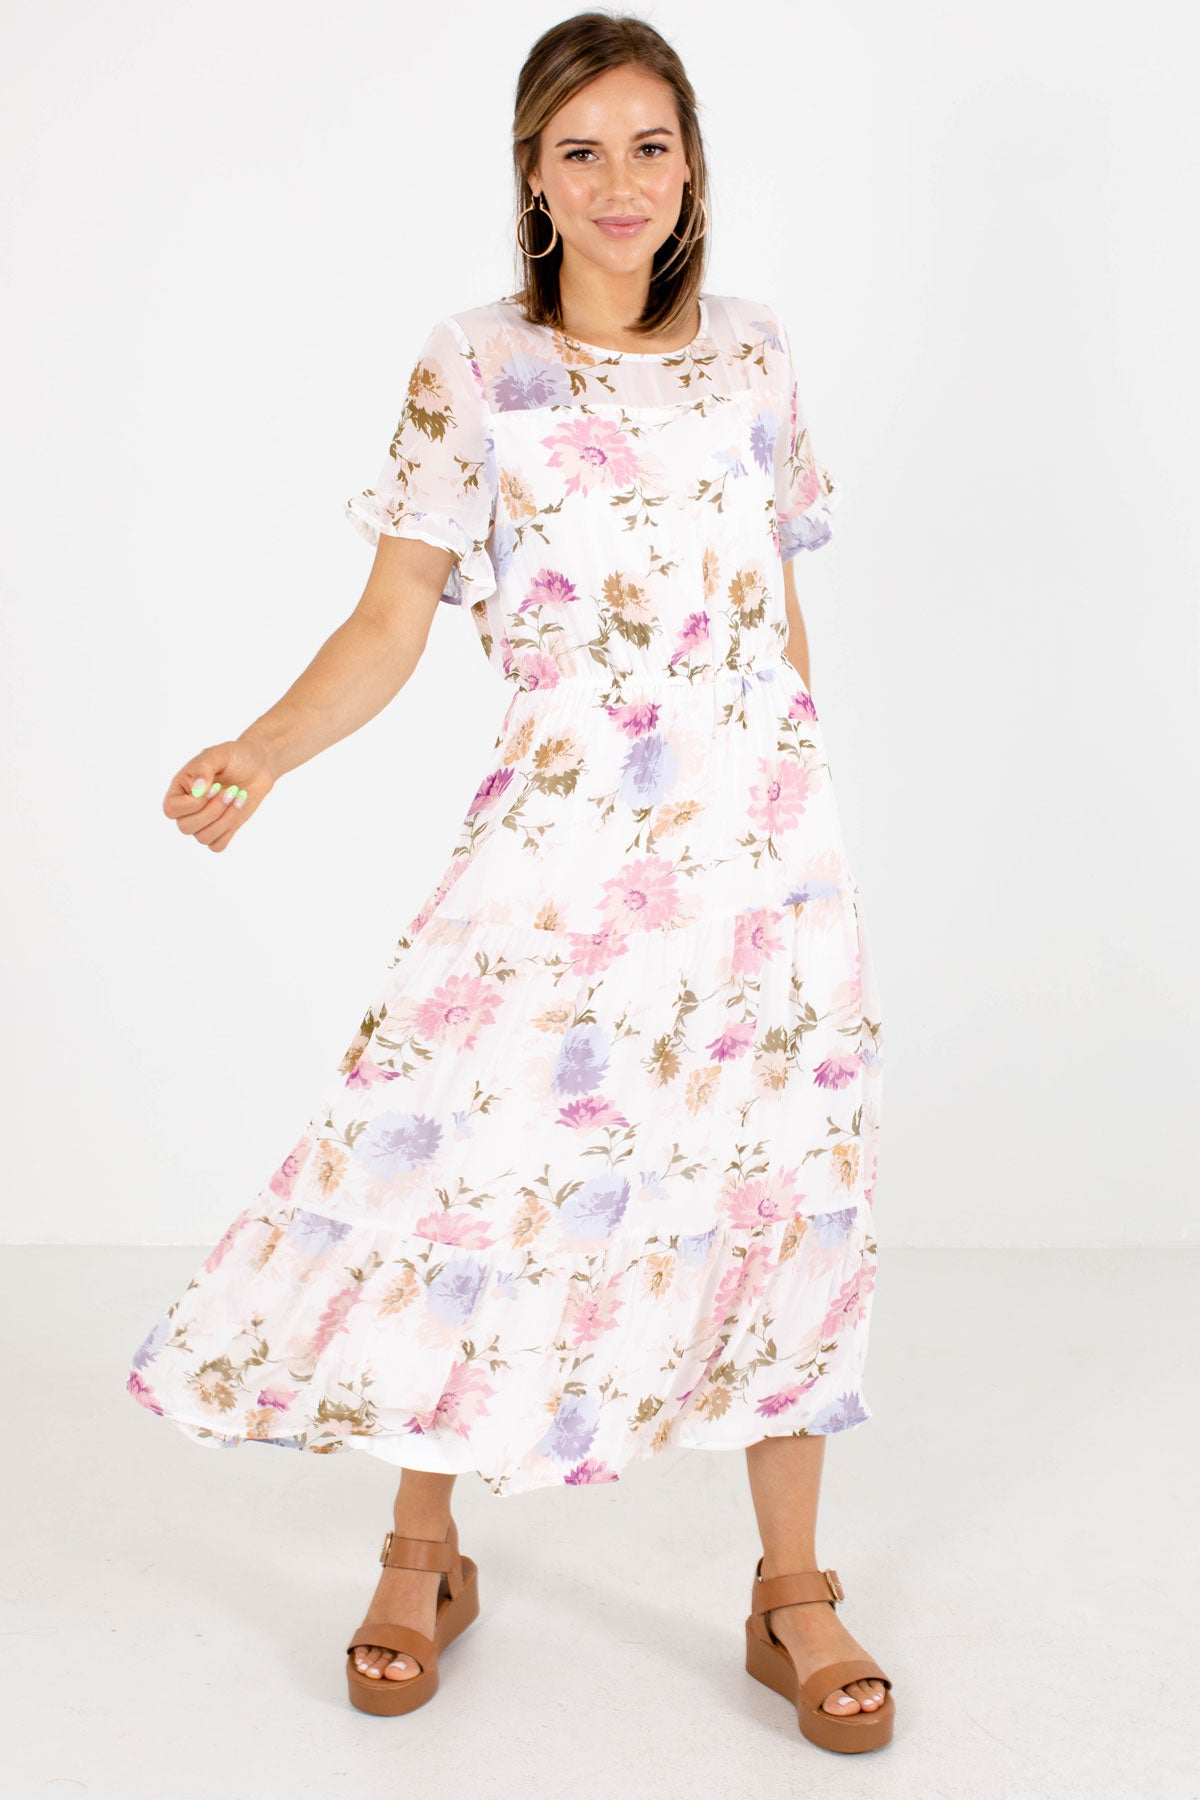 White Floral Boutique Midi Dresses for Women